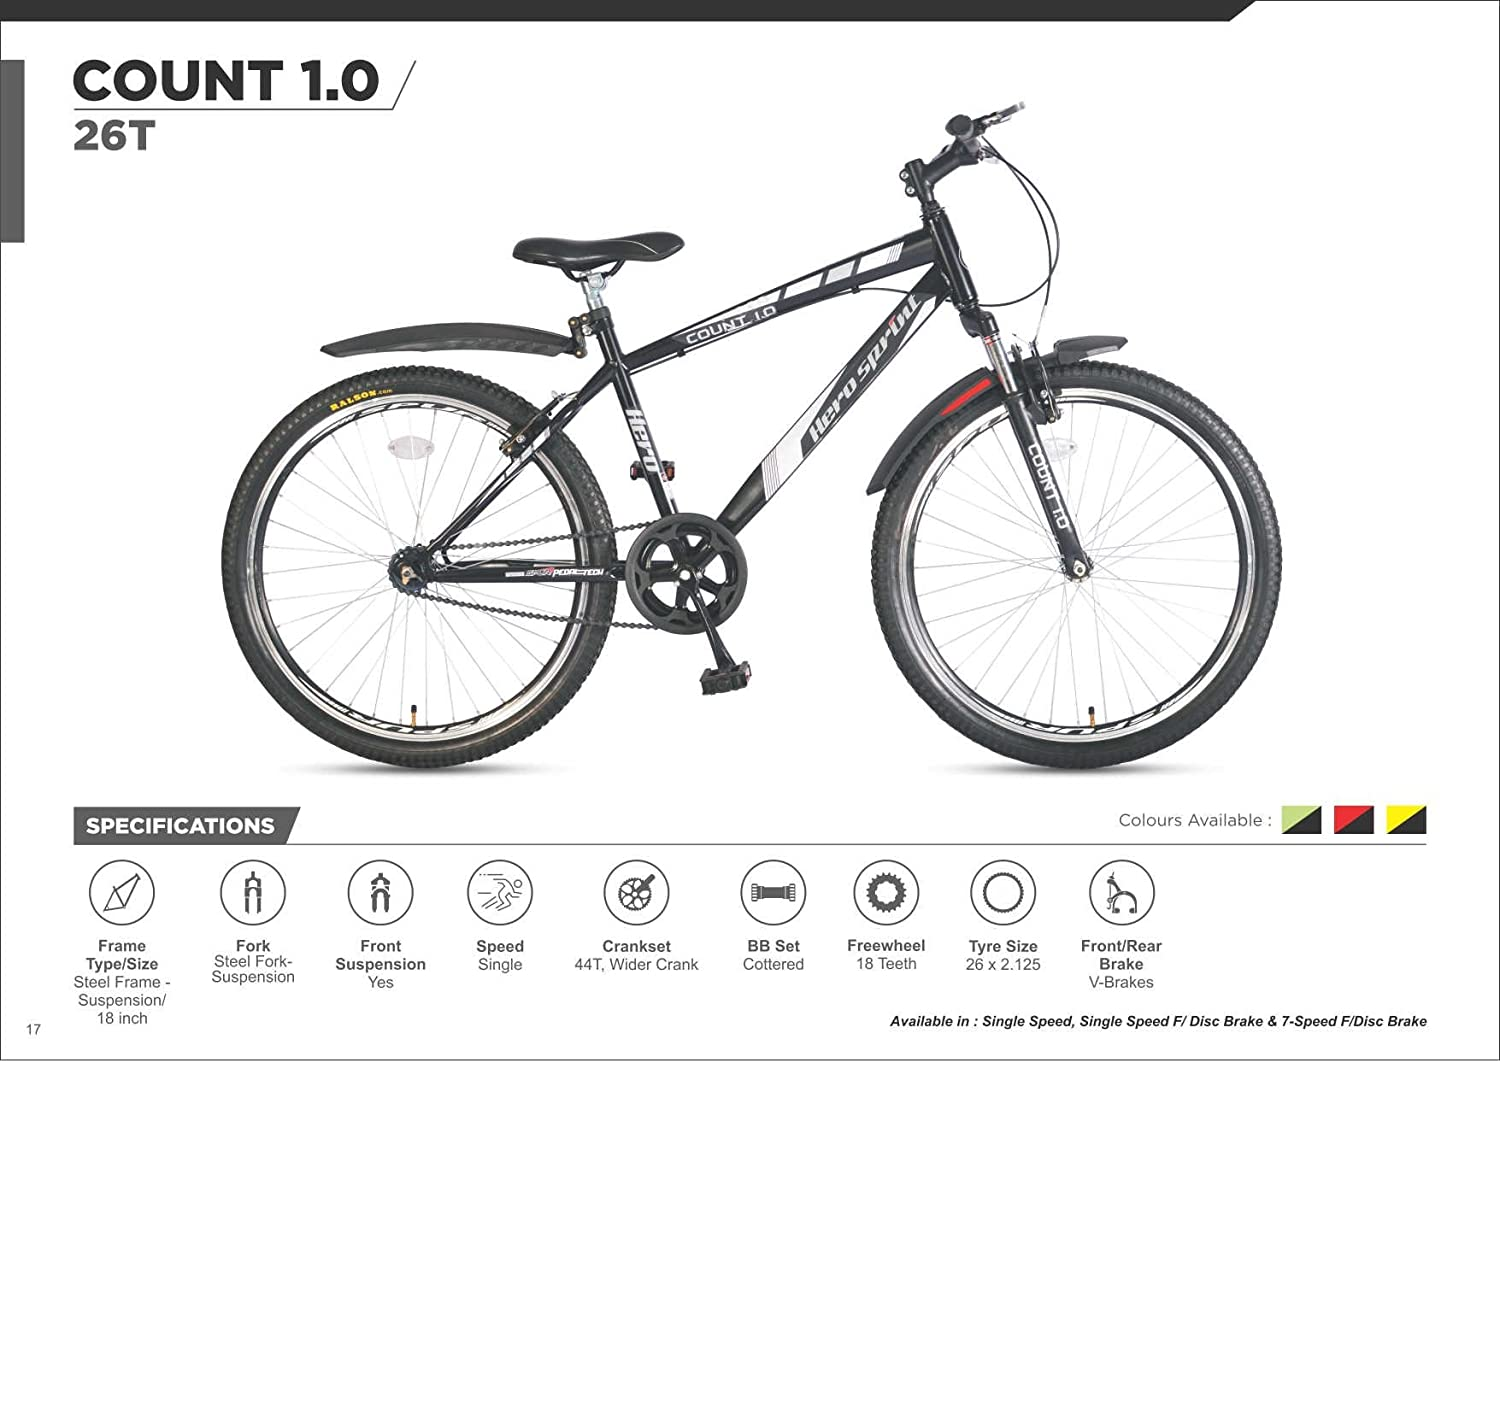 Hero Sprint Count 1.0 26T Single Speed with Front Disc Brake